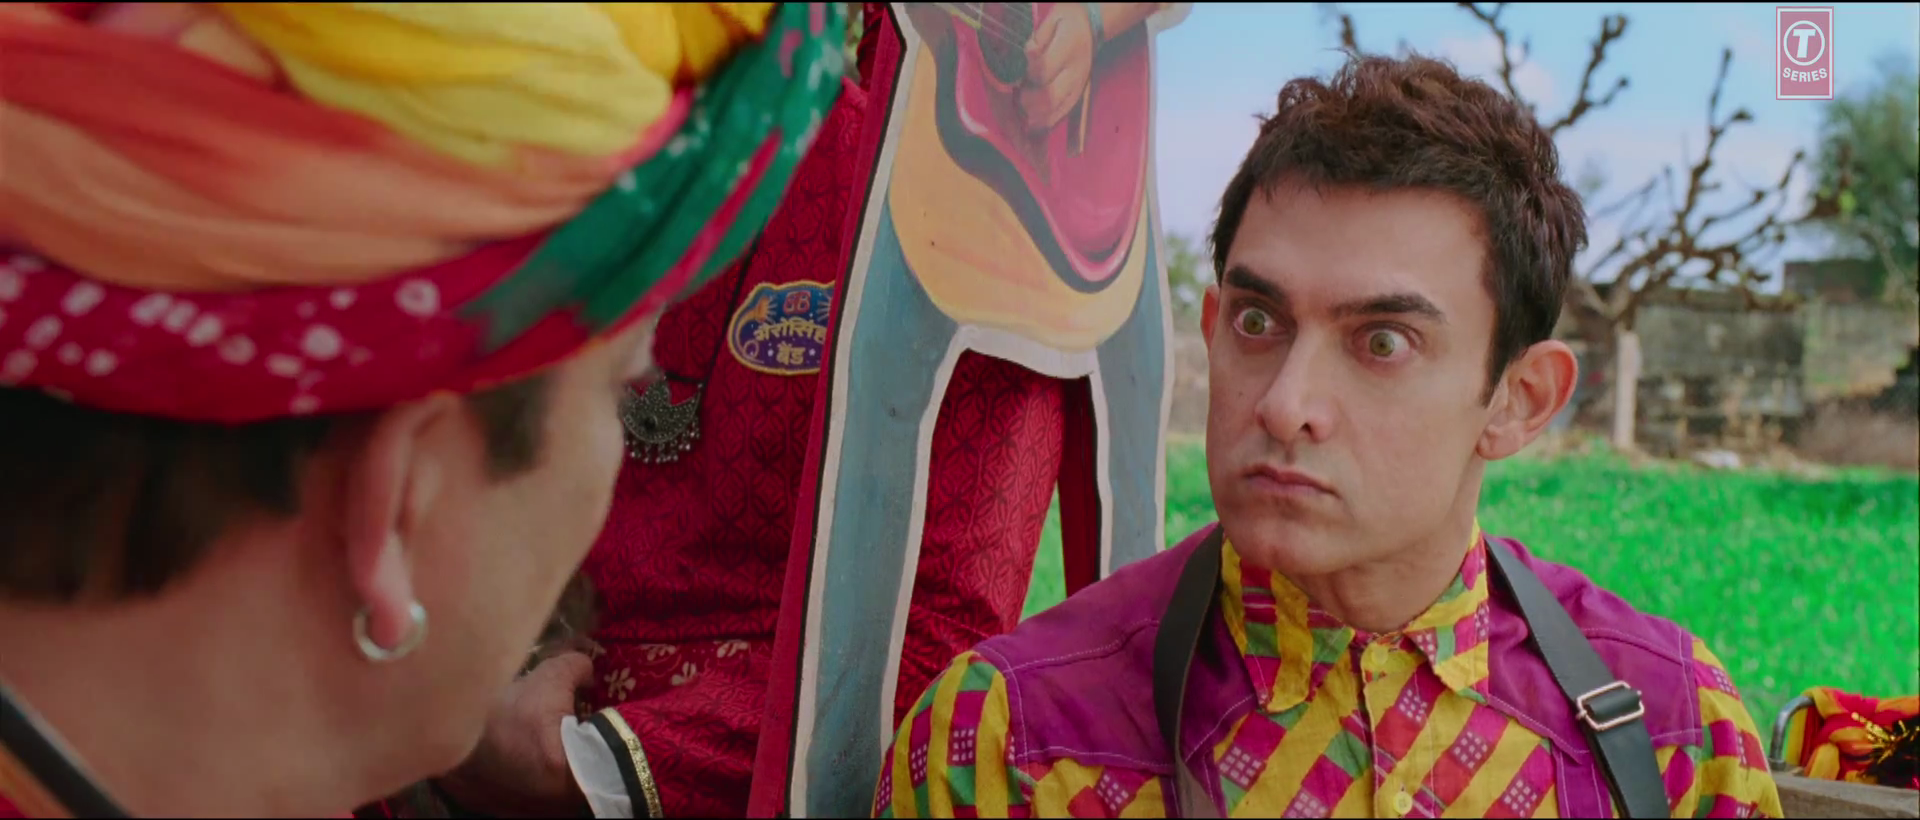 aamir-khan-funny-face-in-tharki-chokra-song-from-pk-film